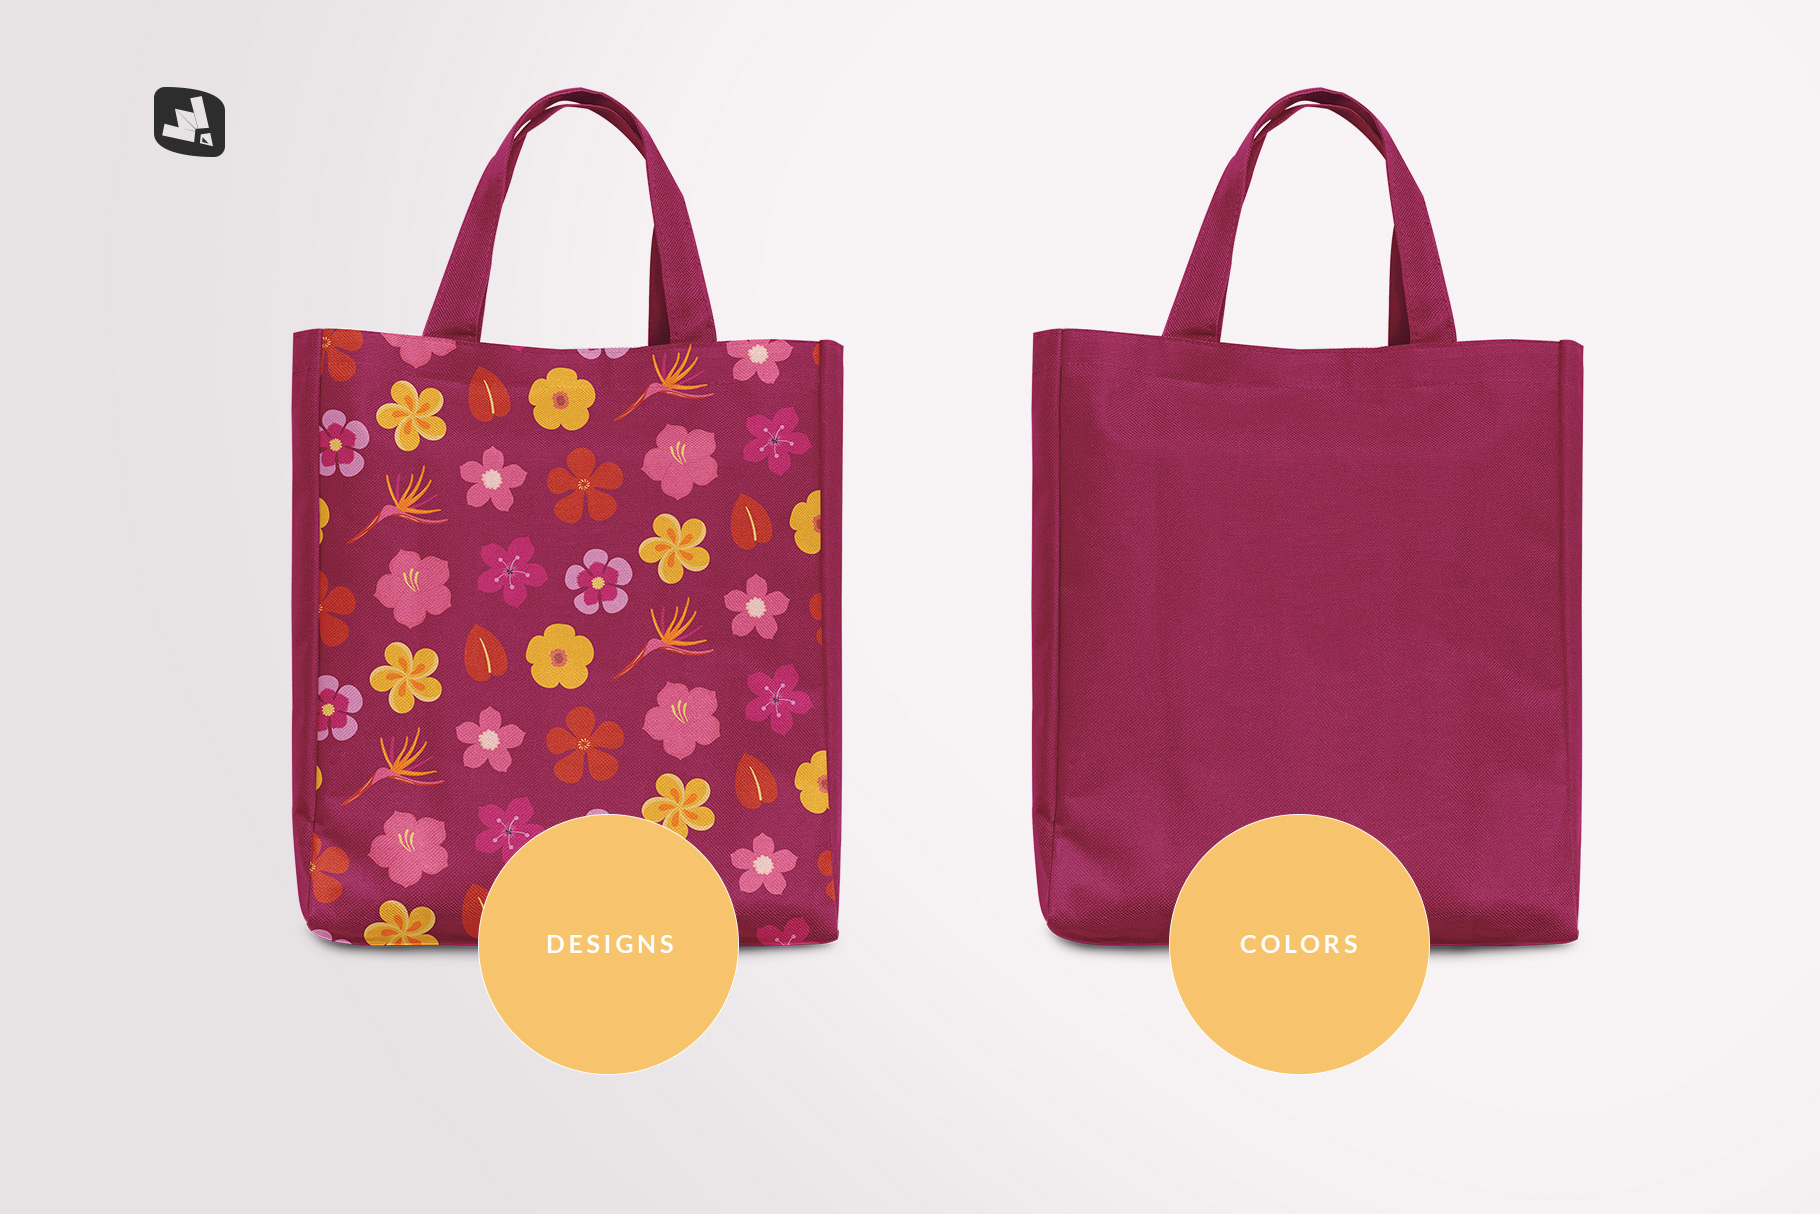 types of the front view canvas bag mockup